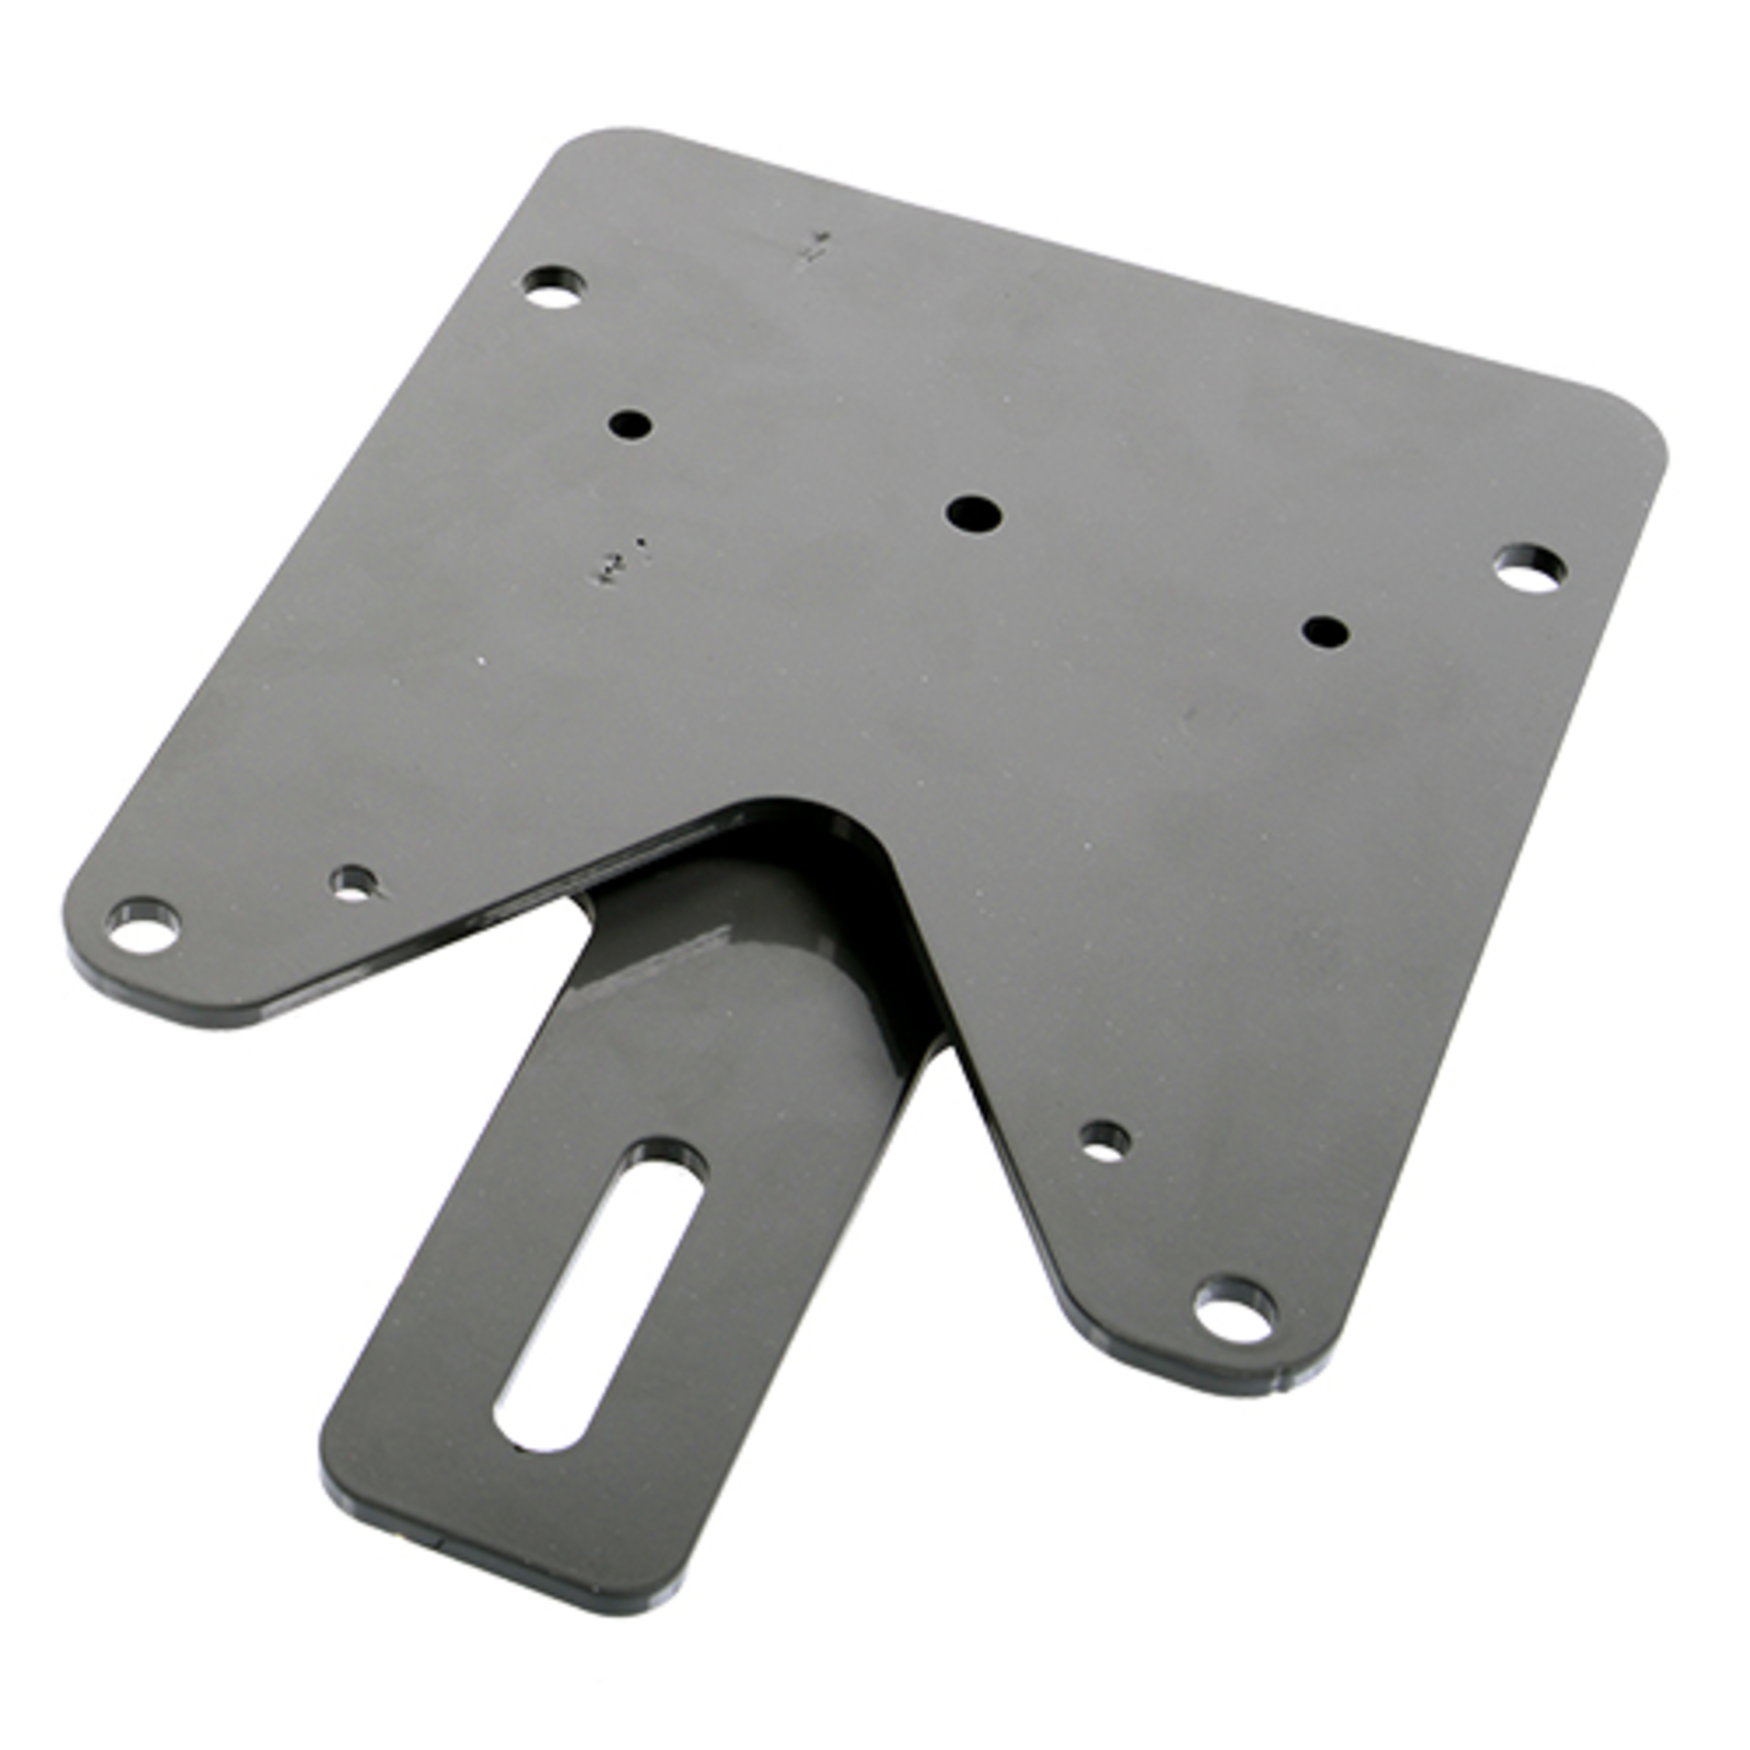 Adapter for base plate and quick-change-system for Secabo TC5, TS7